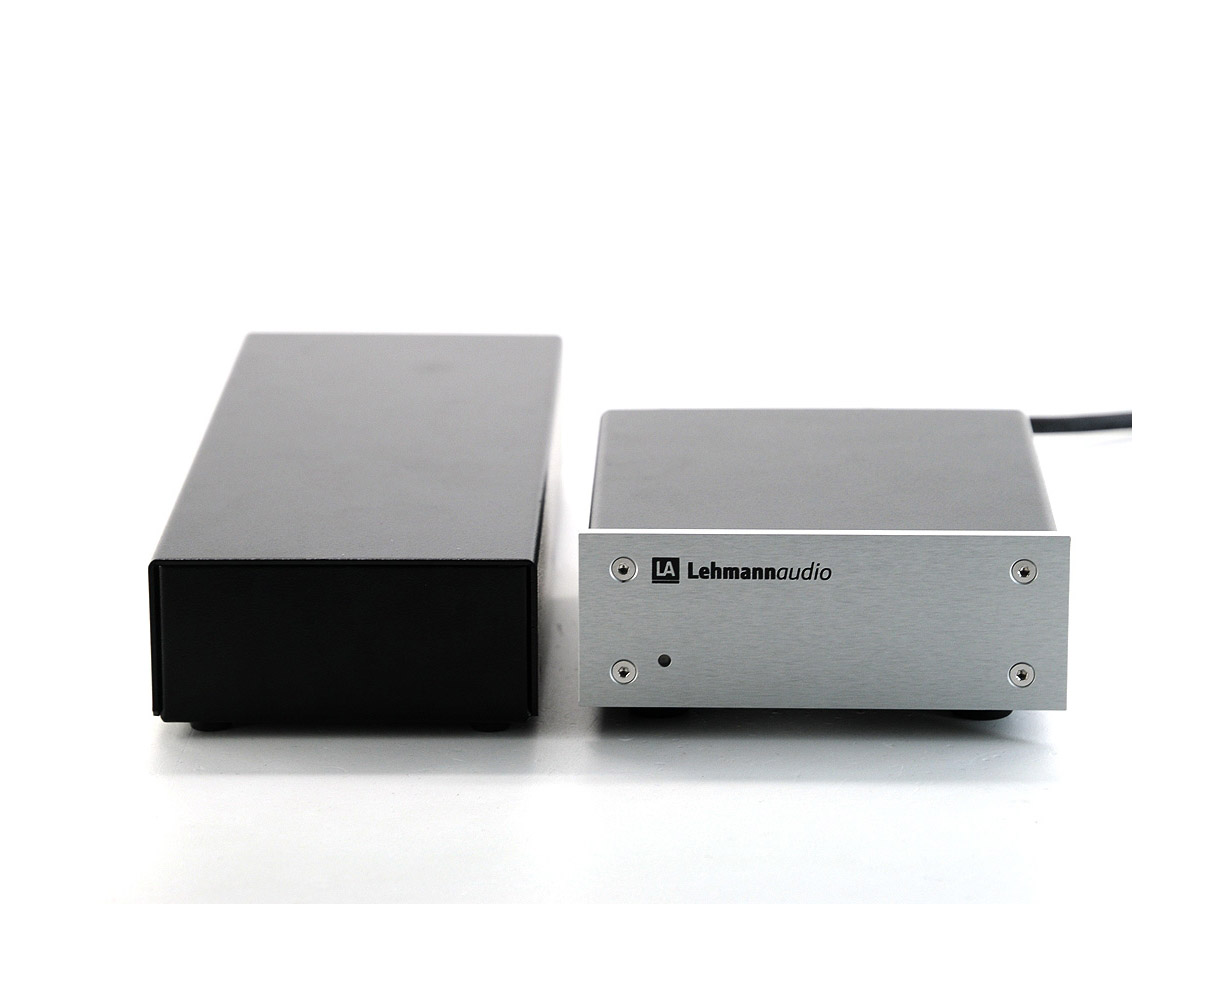 Lehmann Audio Black Cube Se Ii Phono Stage Silver Riotsound Powerful Headphone Amplifier Using Opa134 We Would Be Happy To Consider Your Best Offer For This Item Click On The Make Link Submit